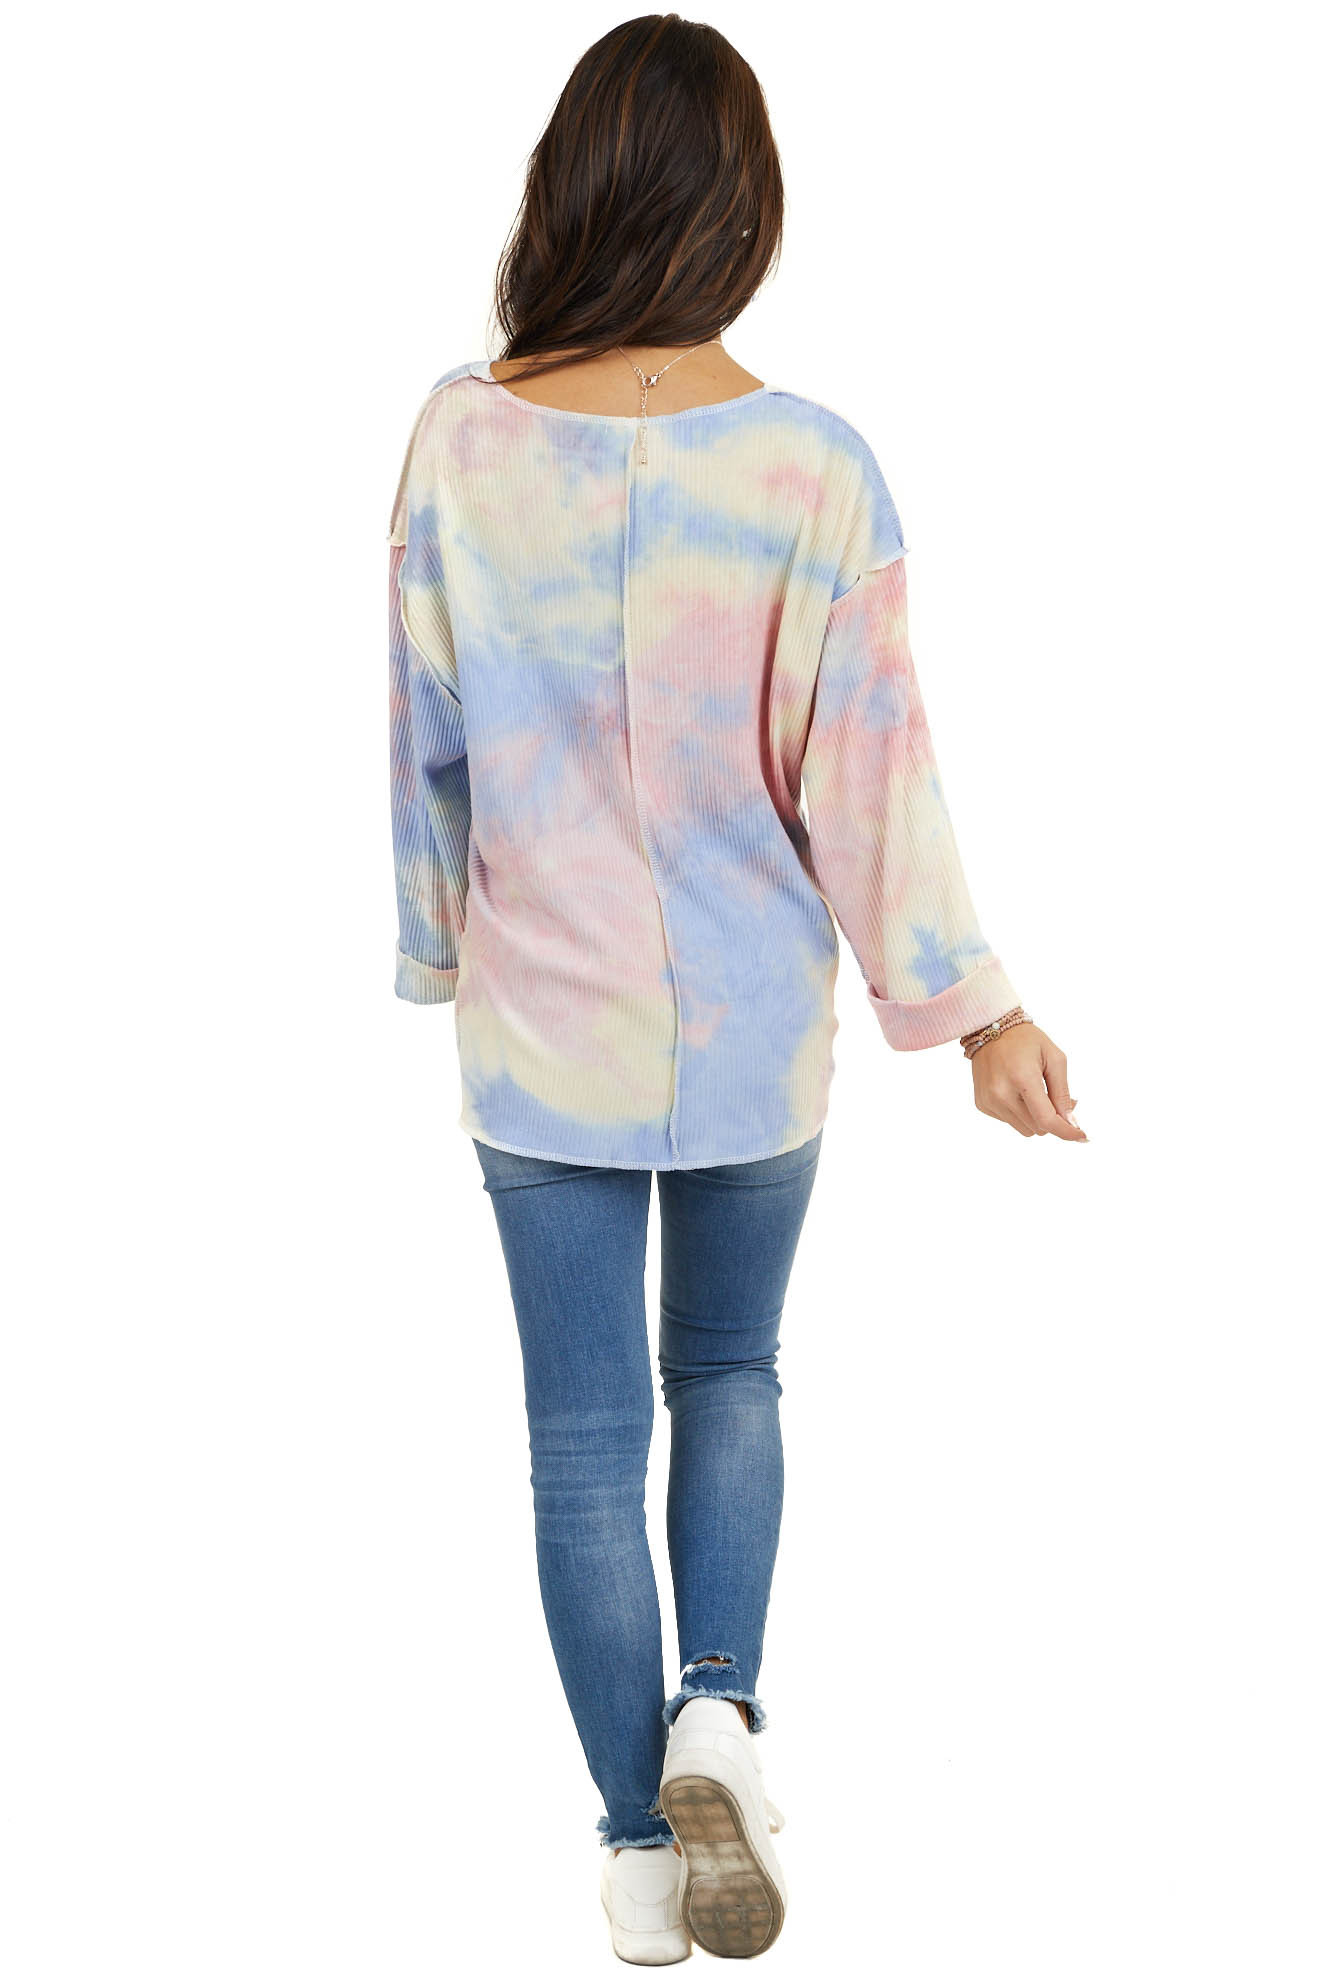 Multicolor Tie Dye Ribbed Knit Top with Long Cuffed Sleeves